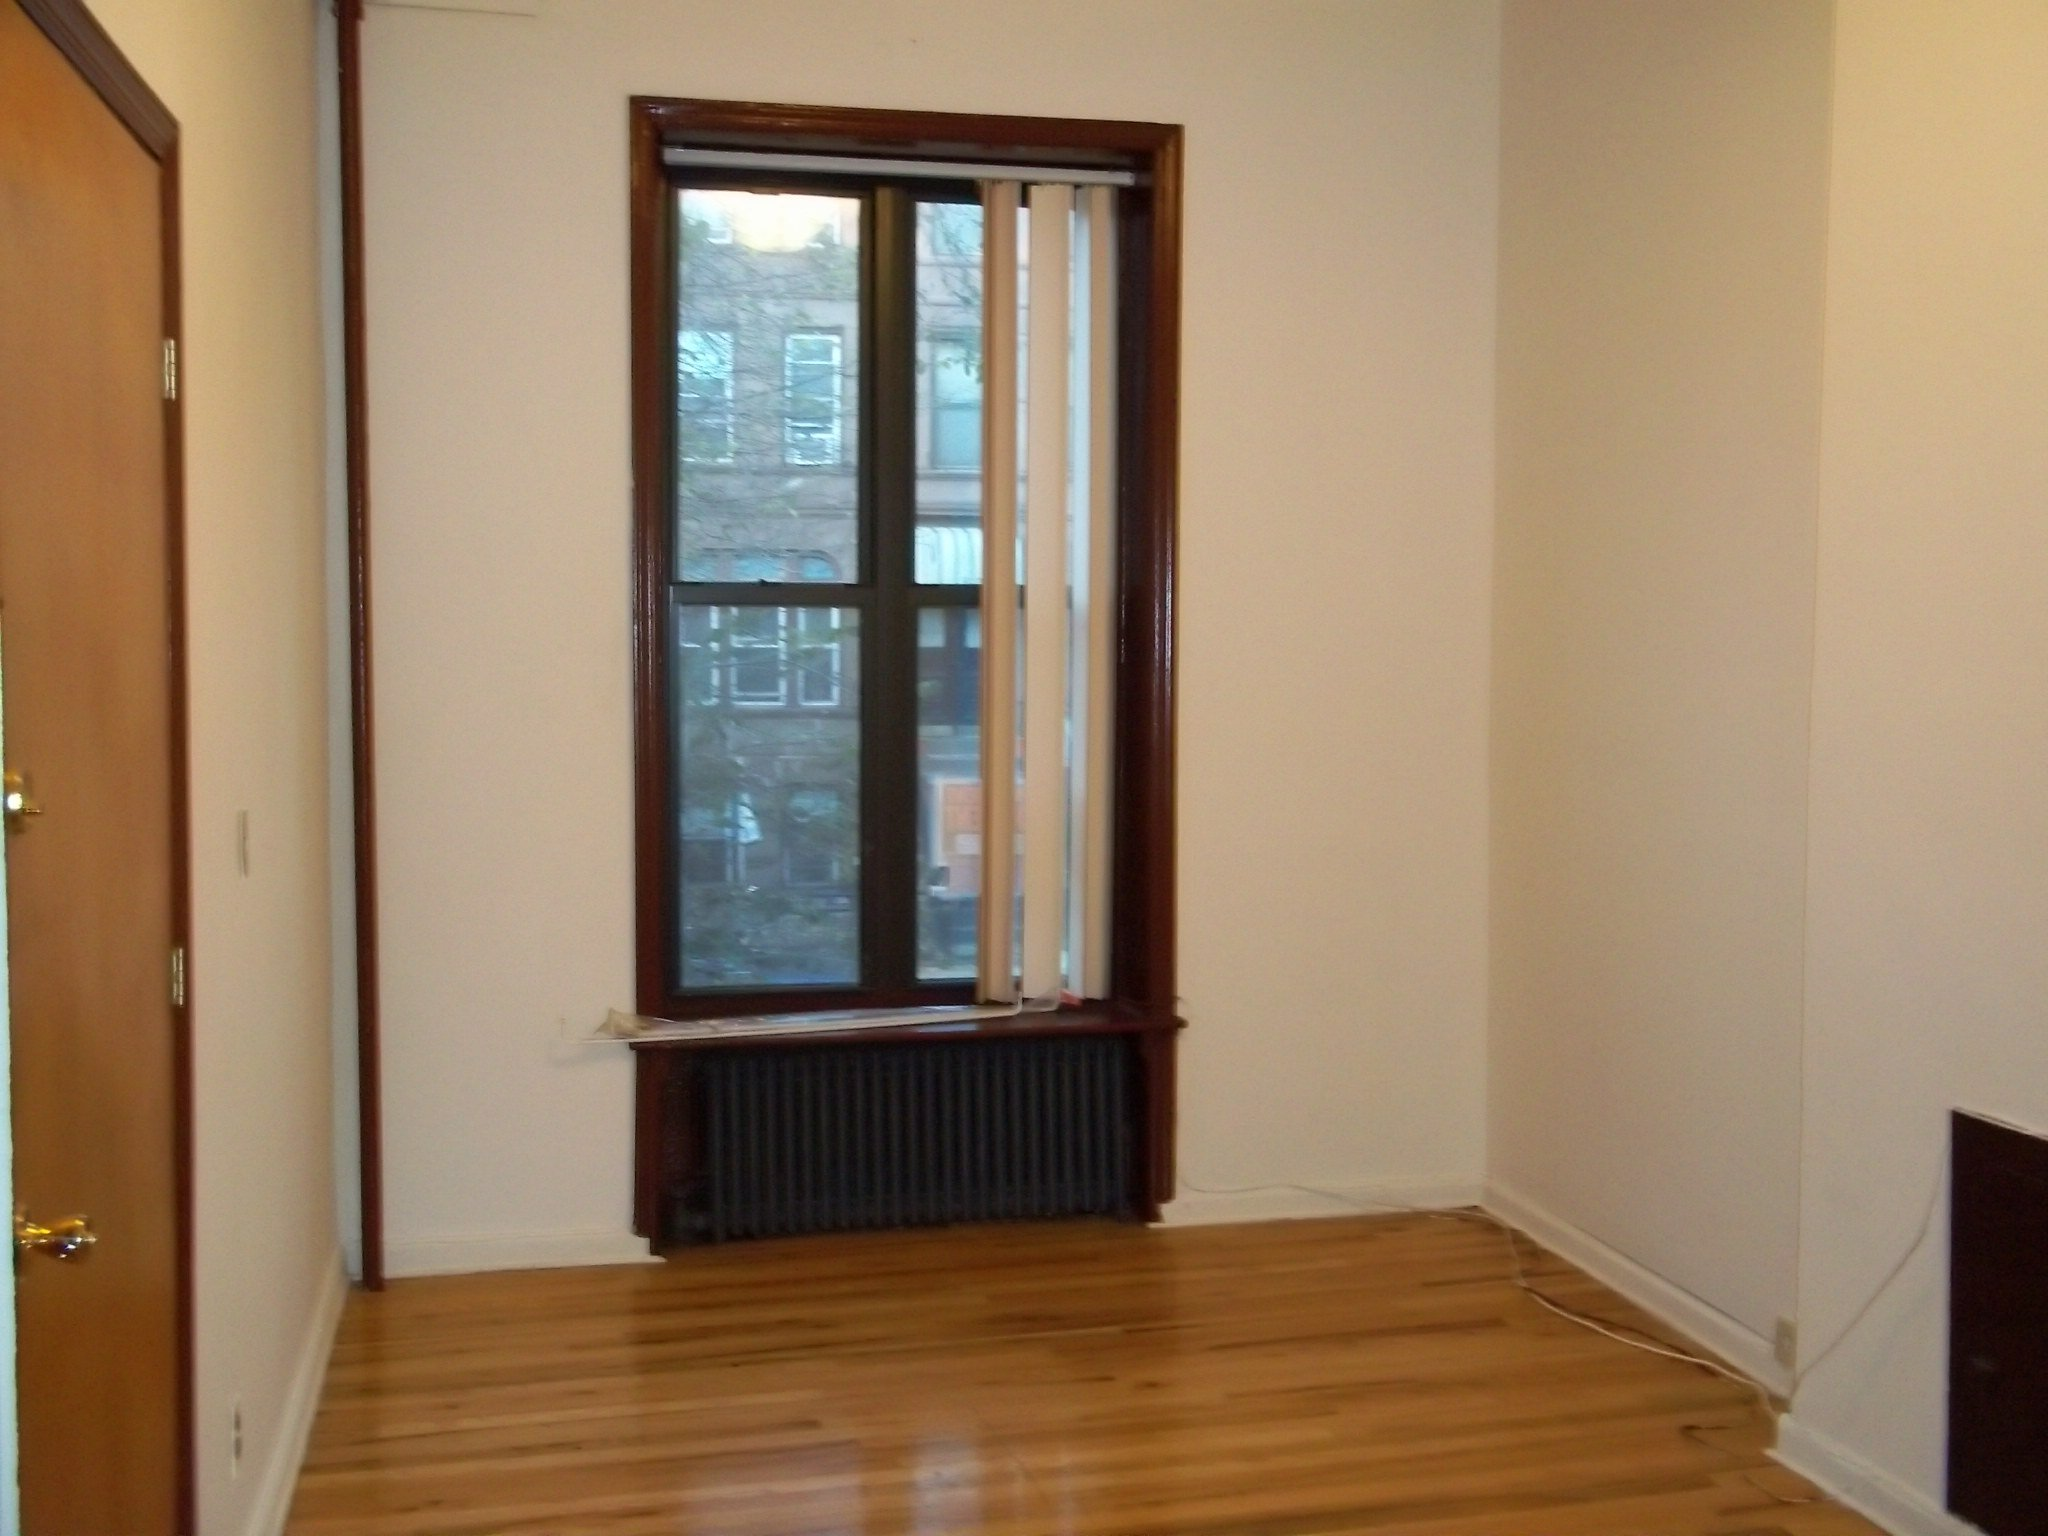 1 bedroom bed stuy apartment for rent brooklyn ny crg3078 - Nyc 1 bedroom apartments for rent ...